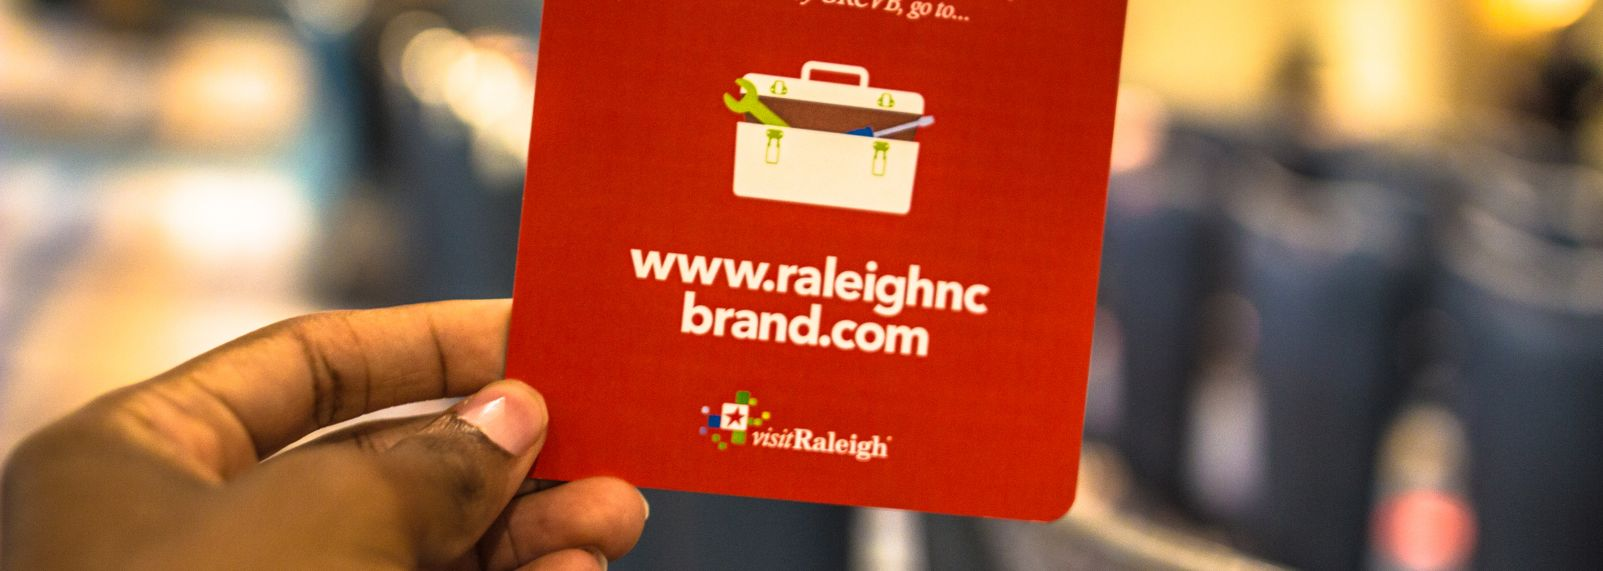 Raleigh north carolina brand kit destination branding malvernweather Images